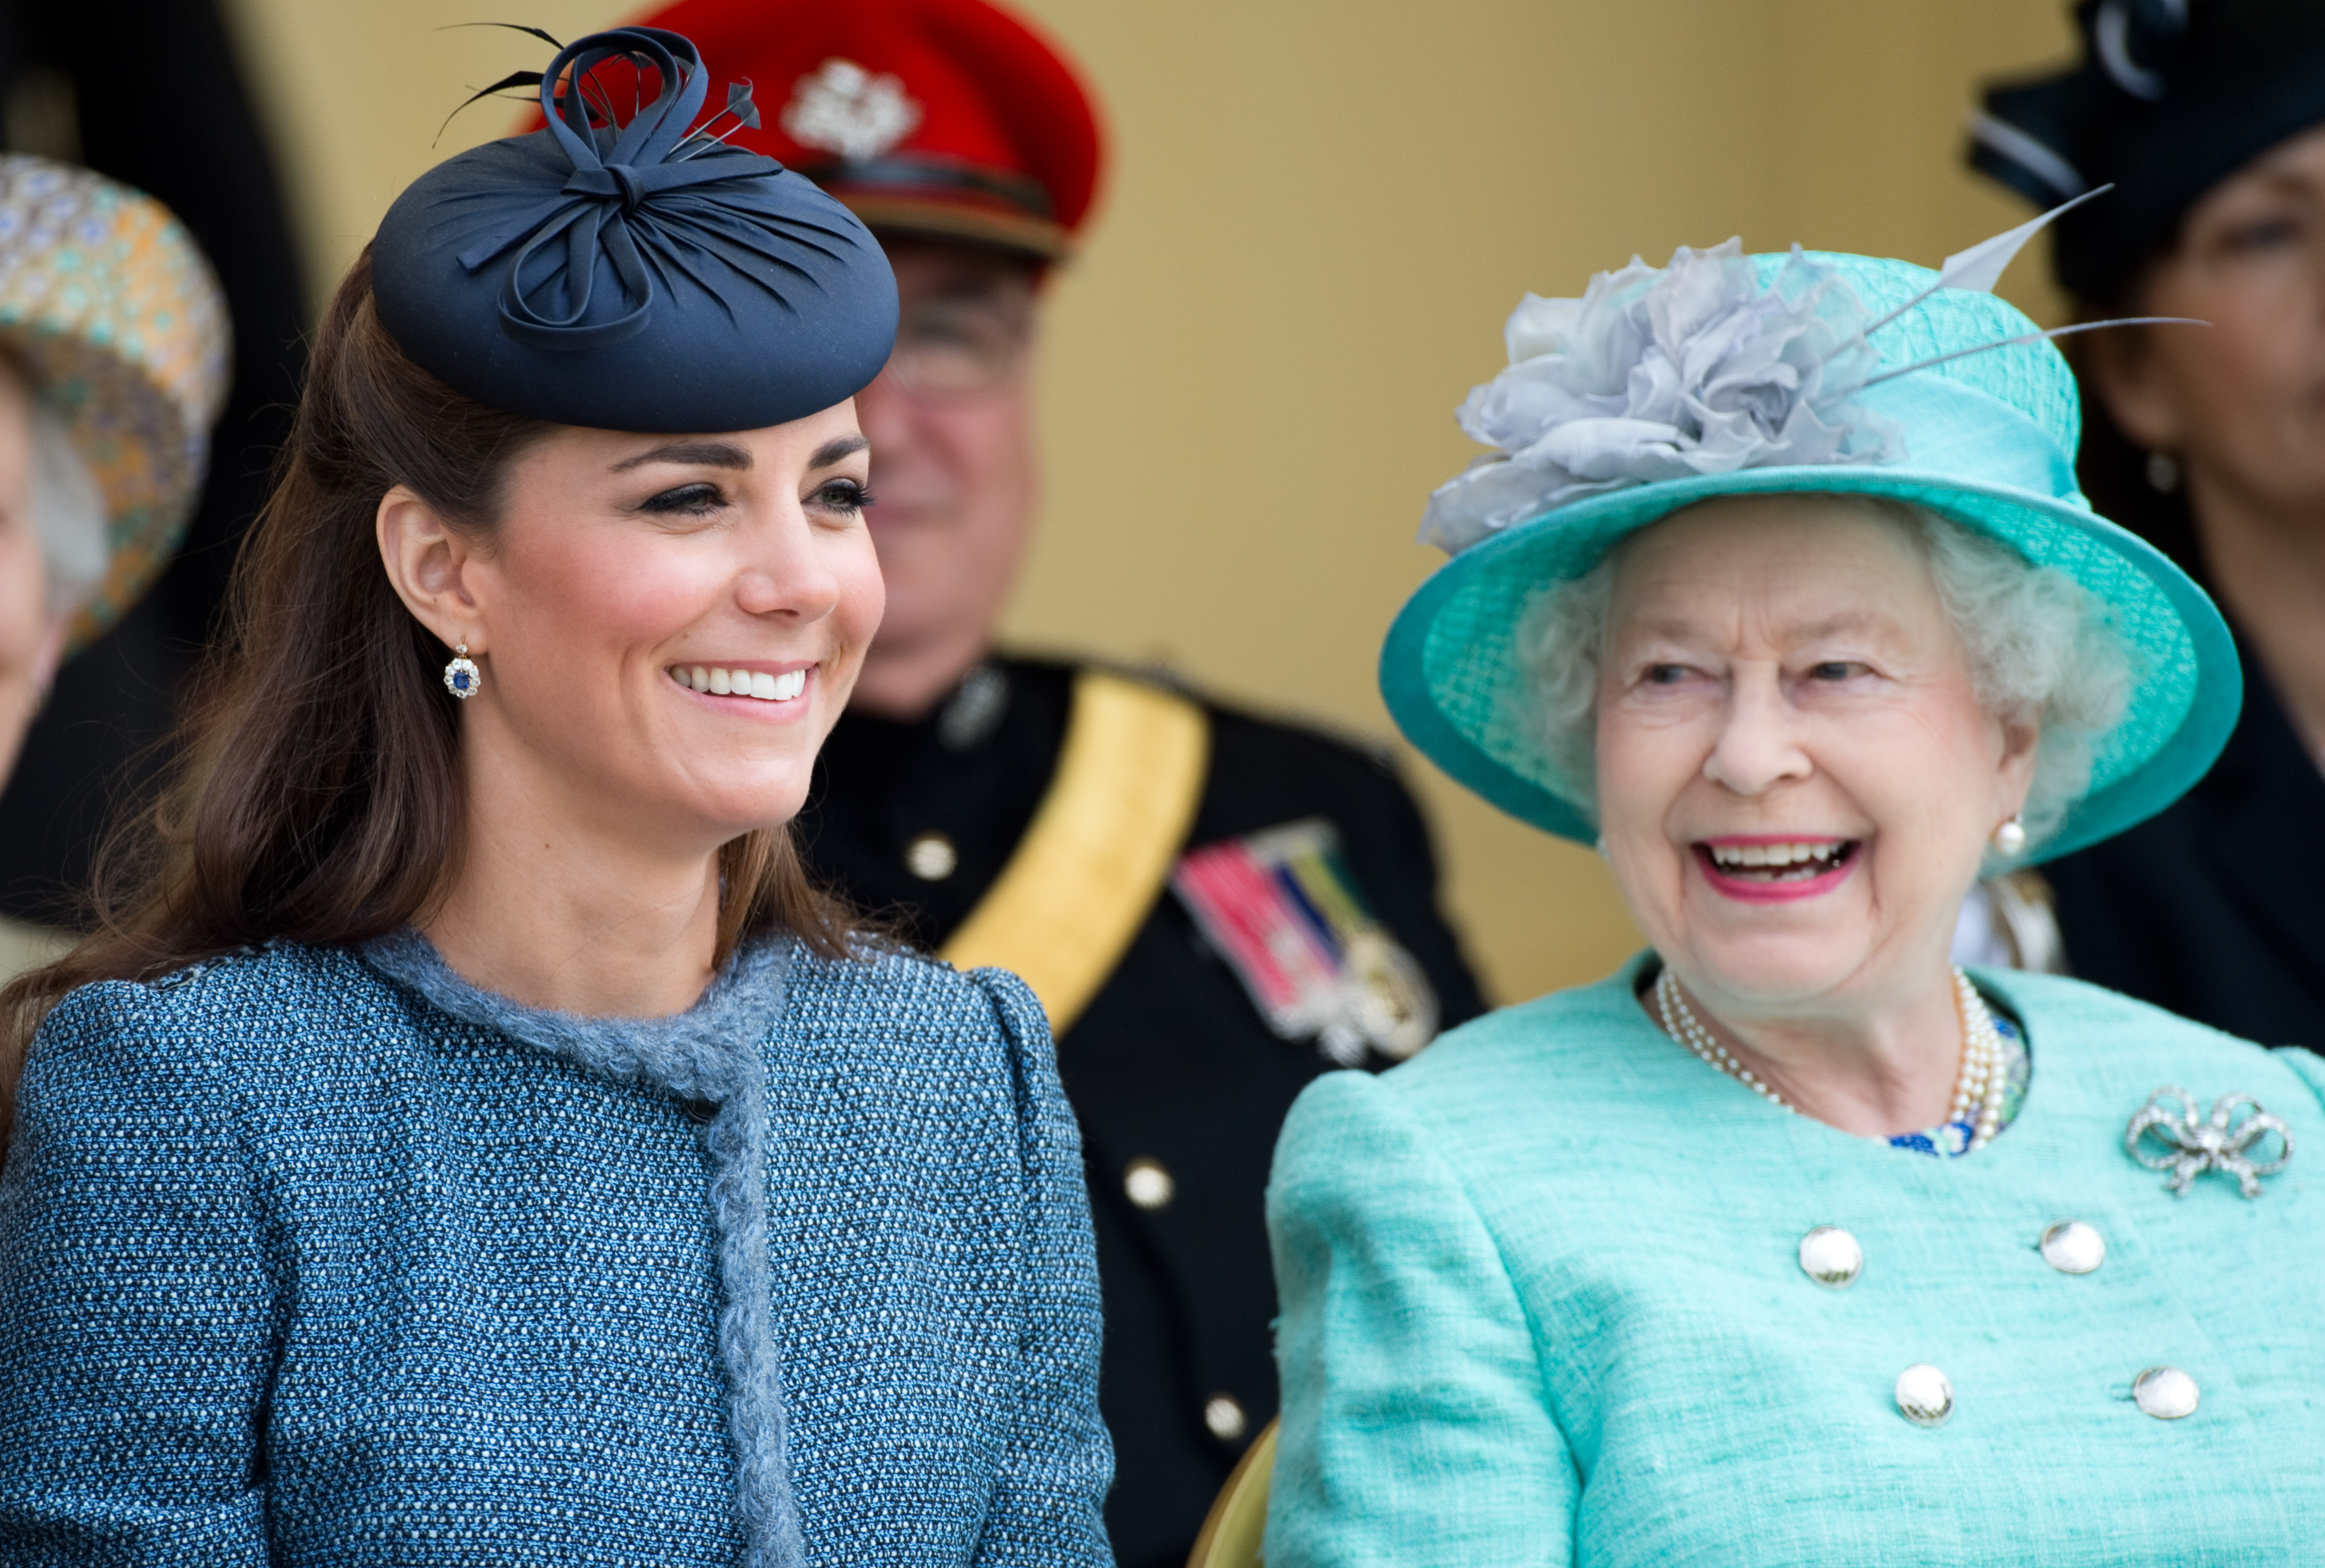 Kate Middleton DIY-ed the Queen's Christmas gift last year because royals — they're just like us